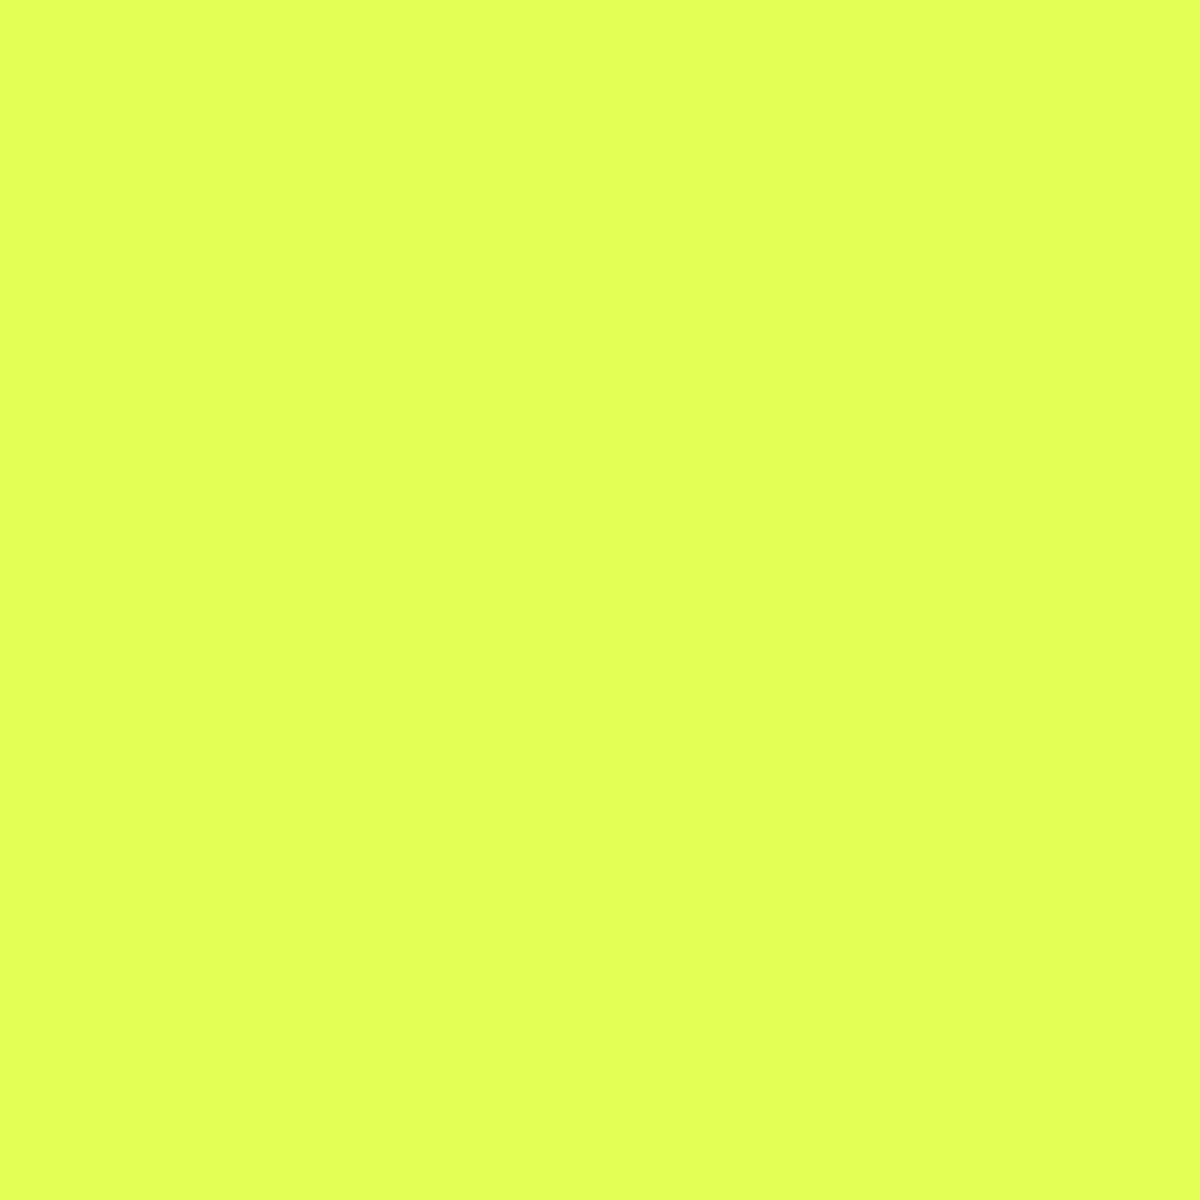 Apple green Blank